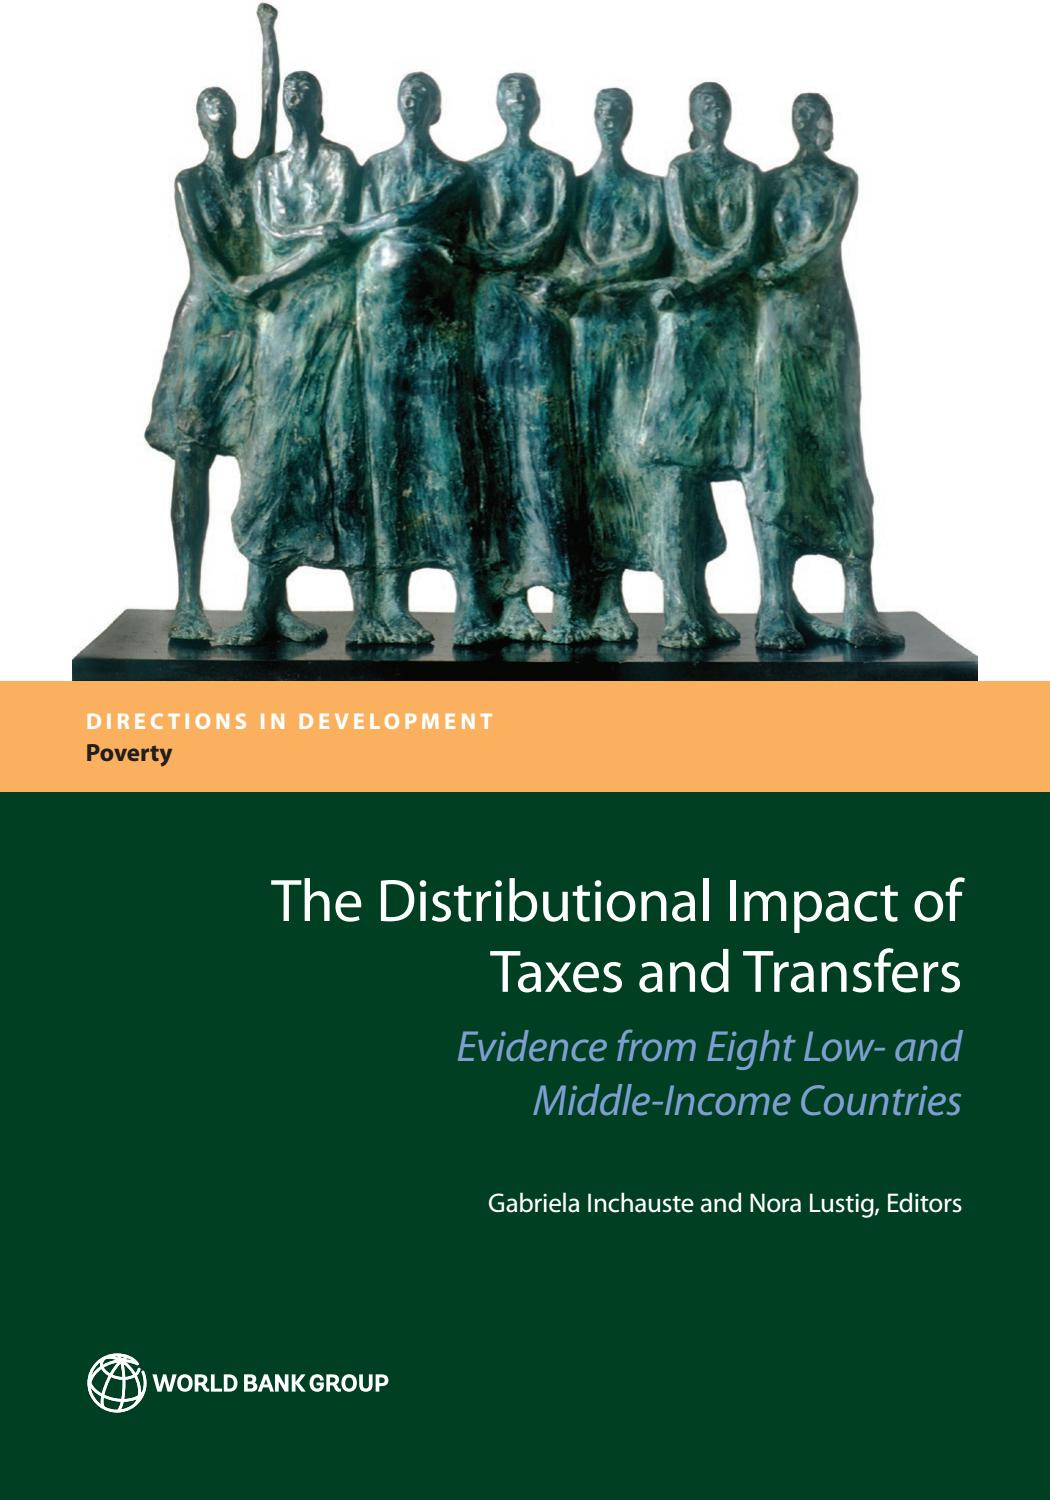 List price 163 3 94 exc vat selling unit each please log in for your - The Distributional Impact Of Taxes And Transfers By World Bank Publications Issuu